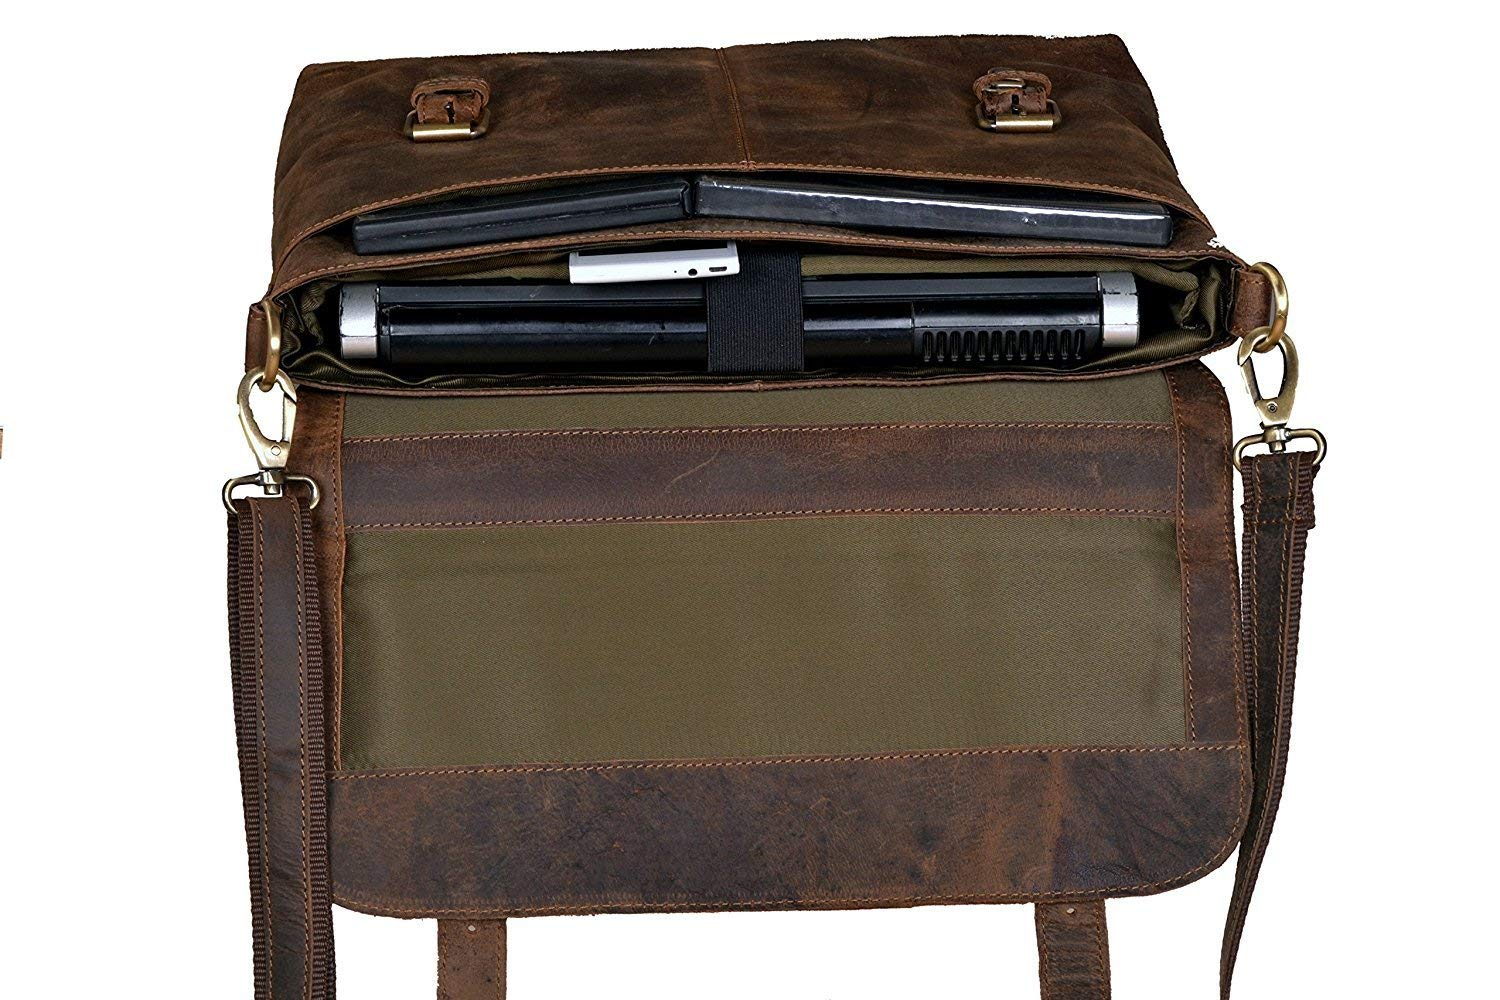 18 Inch Retro Buffalo Hunter Leather Laptop Messenger Bag Office Briefcase College Bag for Men and Women by handolederco. (Image #4)